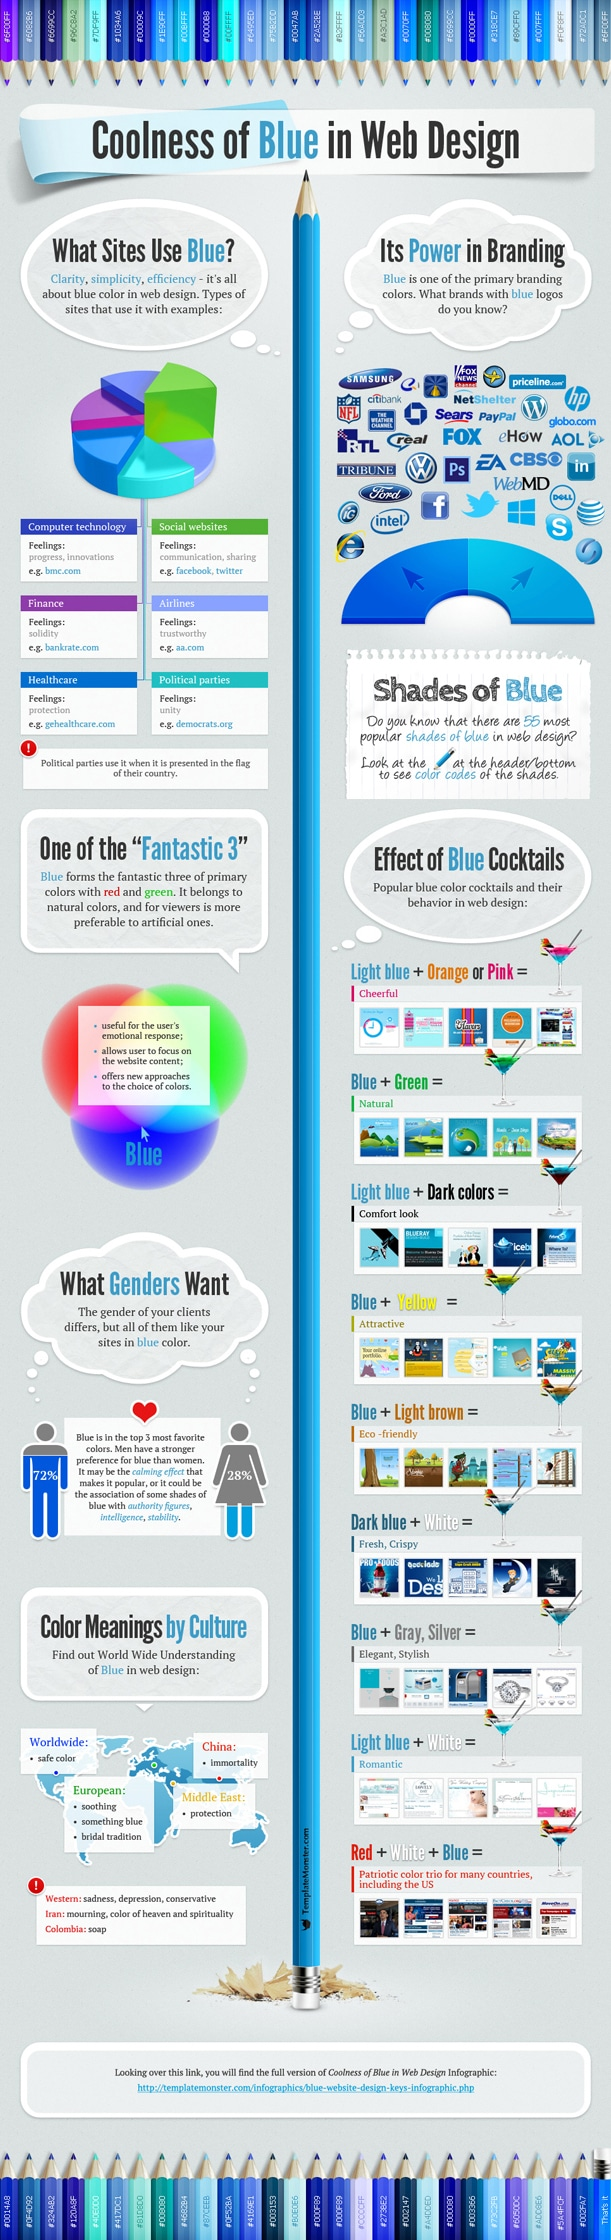 Why The Web's Most Popular Color Is Blue [Infographic]